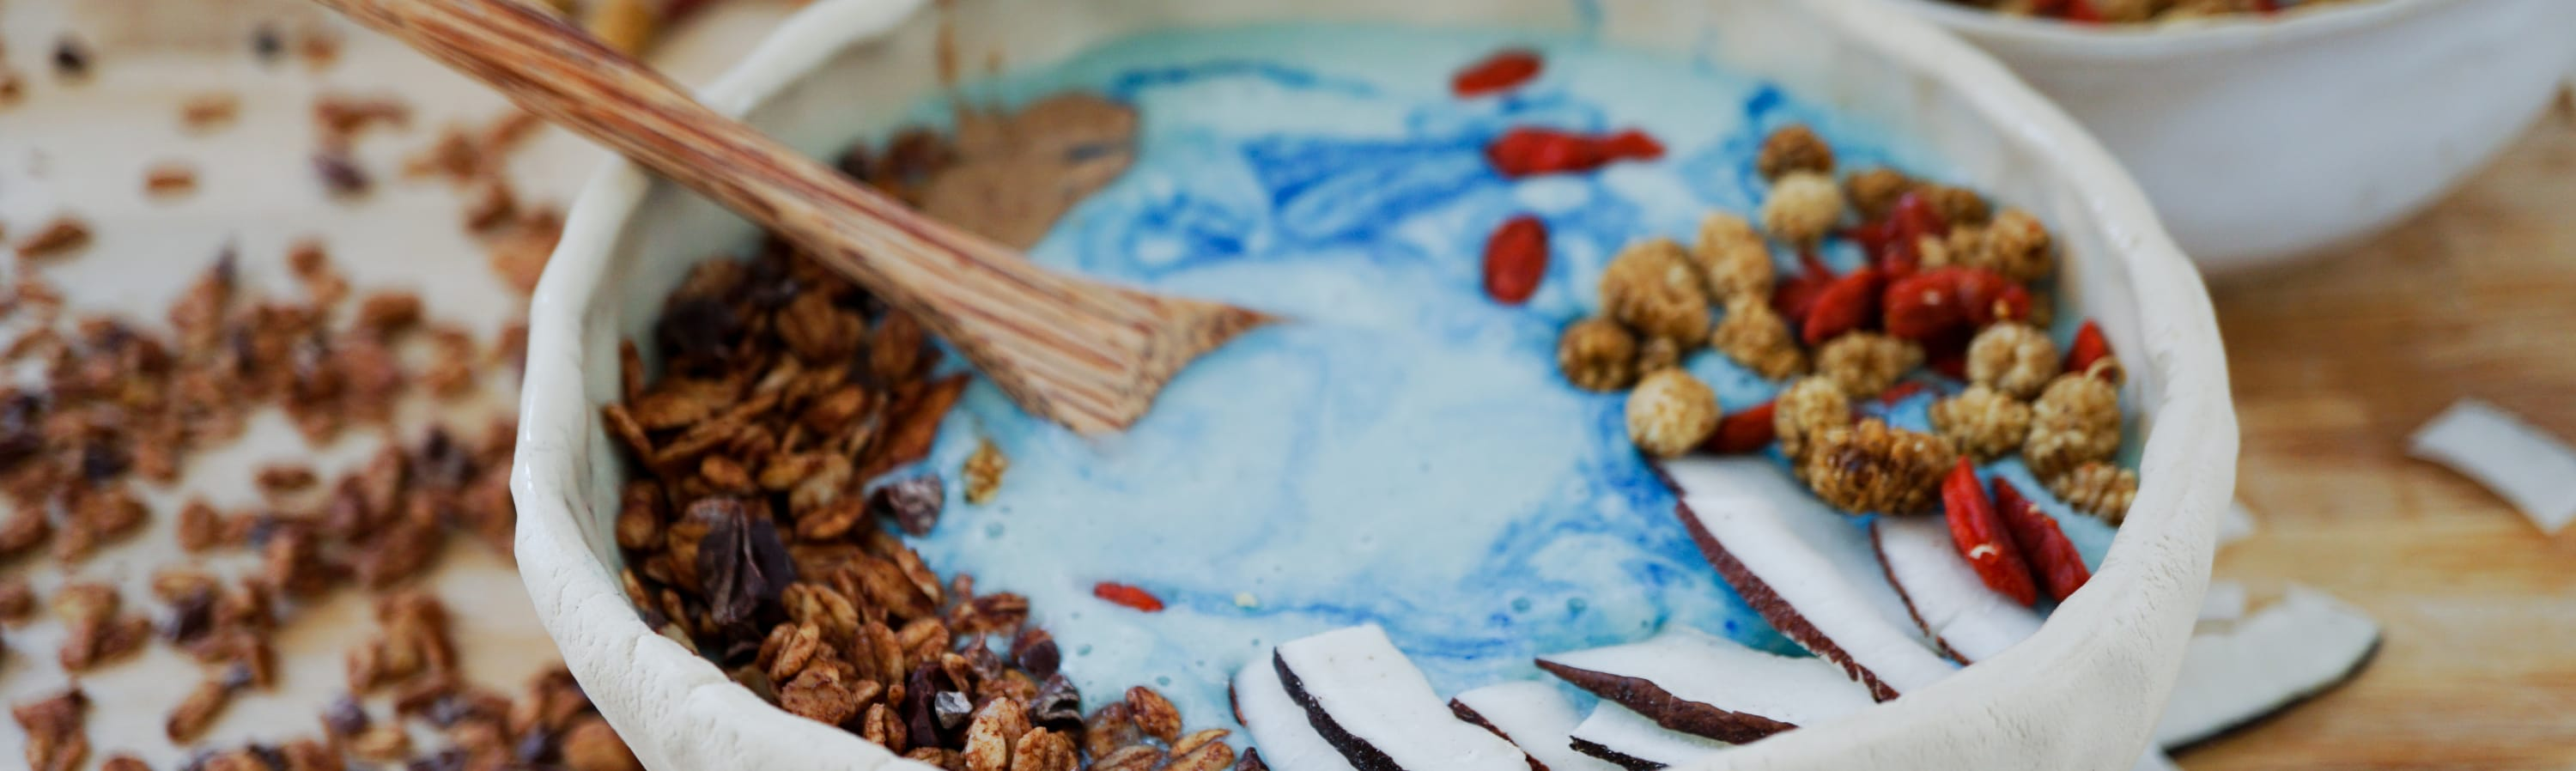 blue majik spirulina smoothie bowl with toppings and a wooden spoon